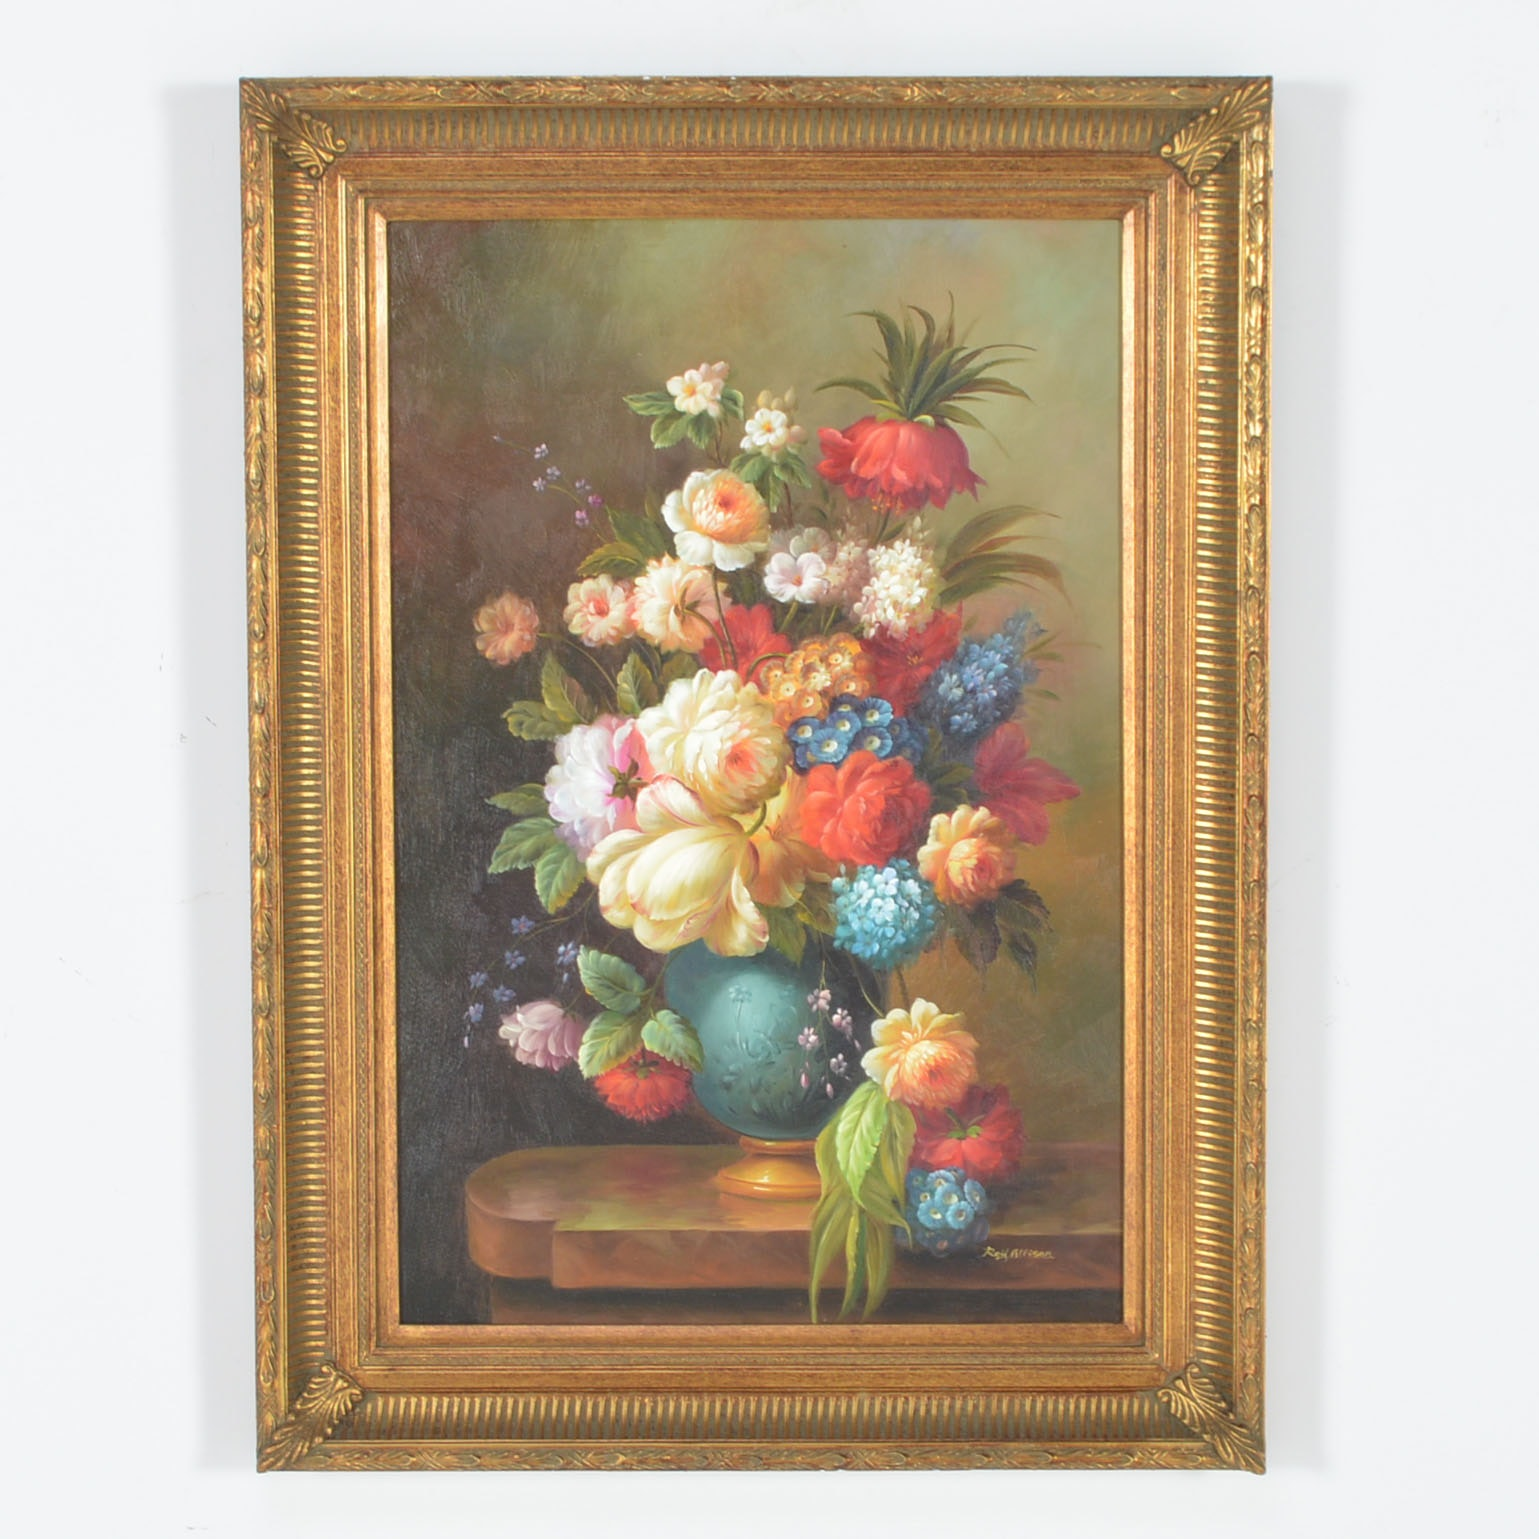 Framed Giclee of Floral Still Life